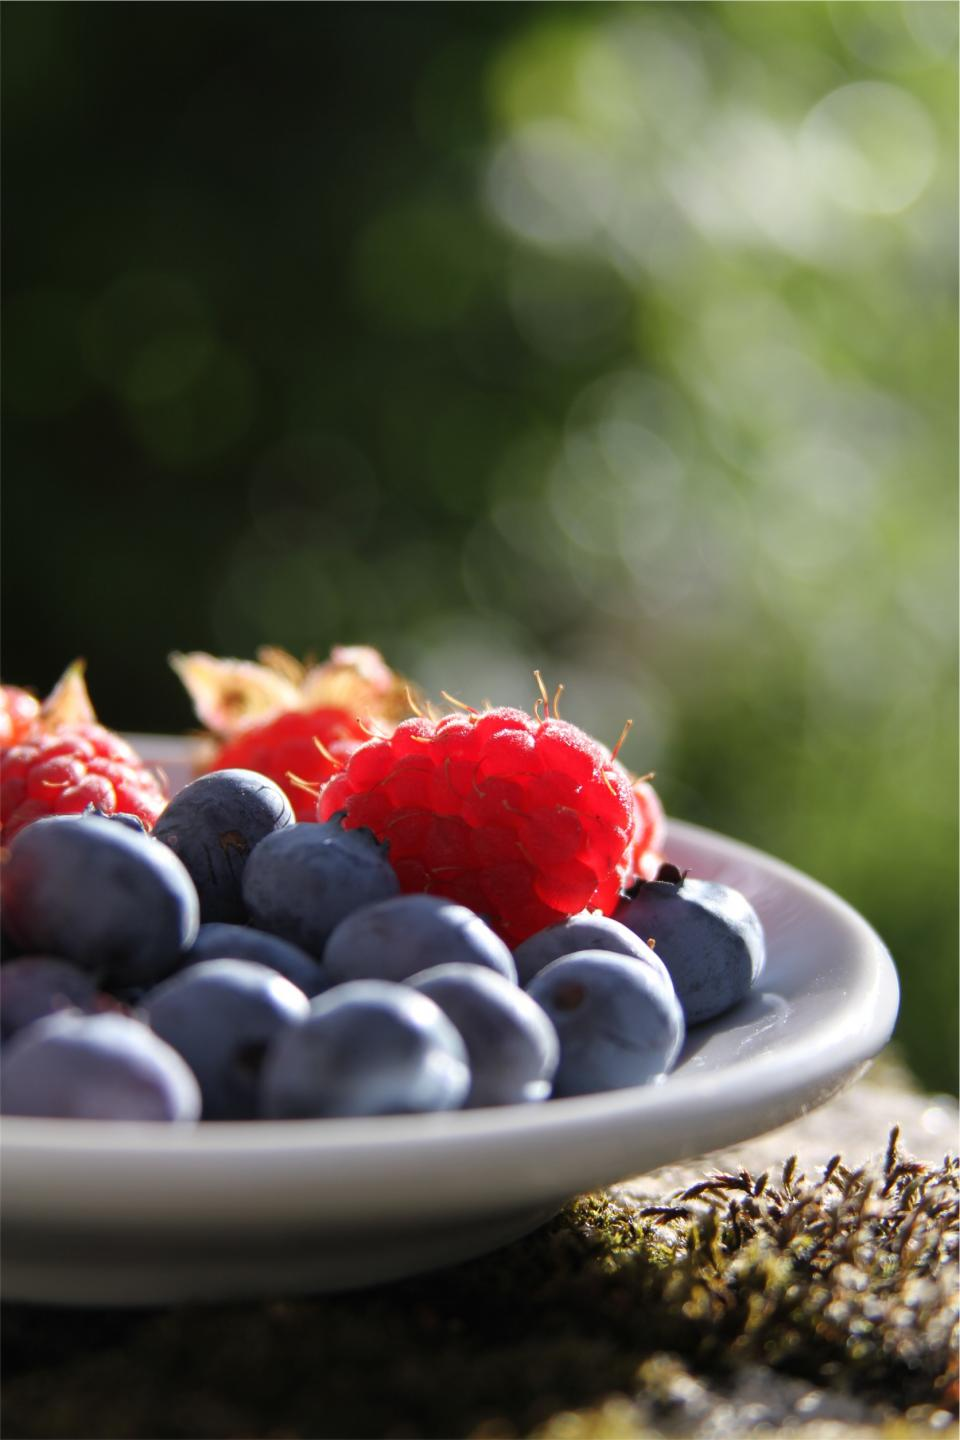 blueberries raspberries fruits food healthy